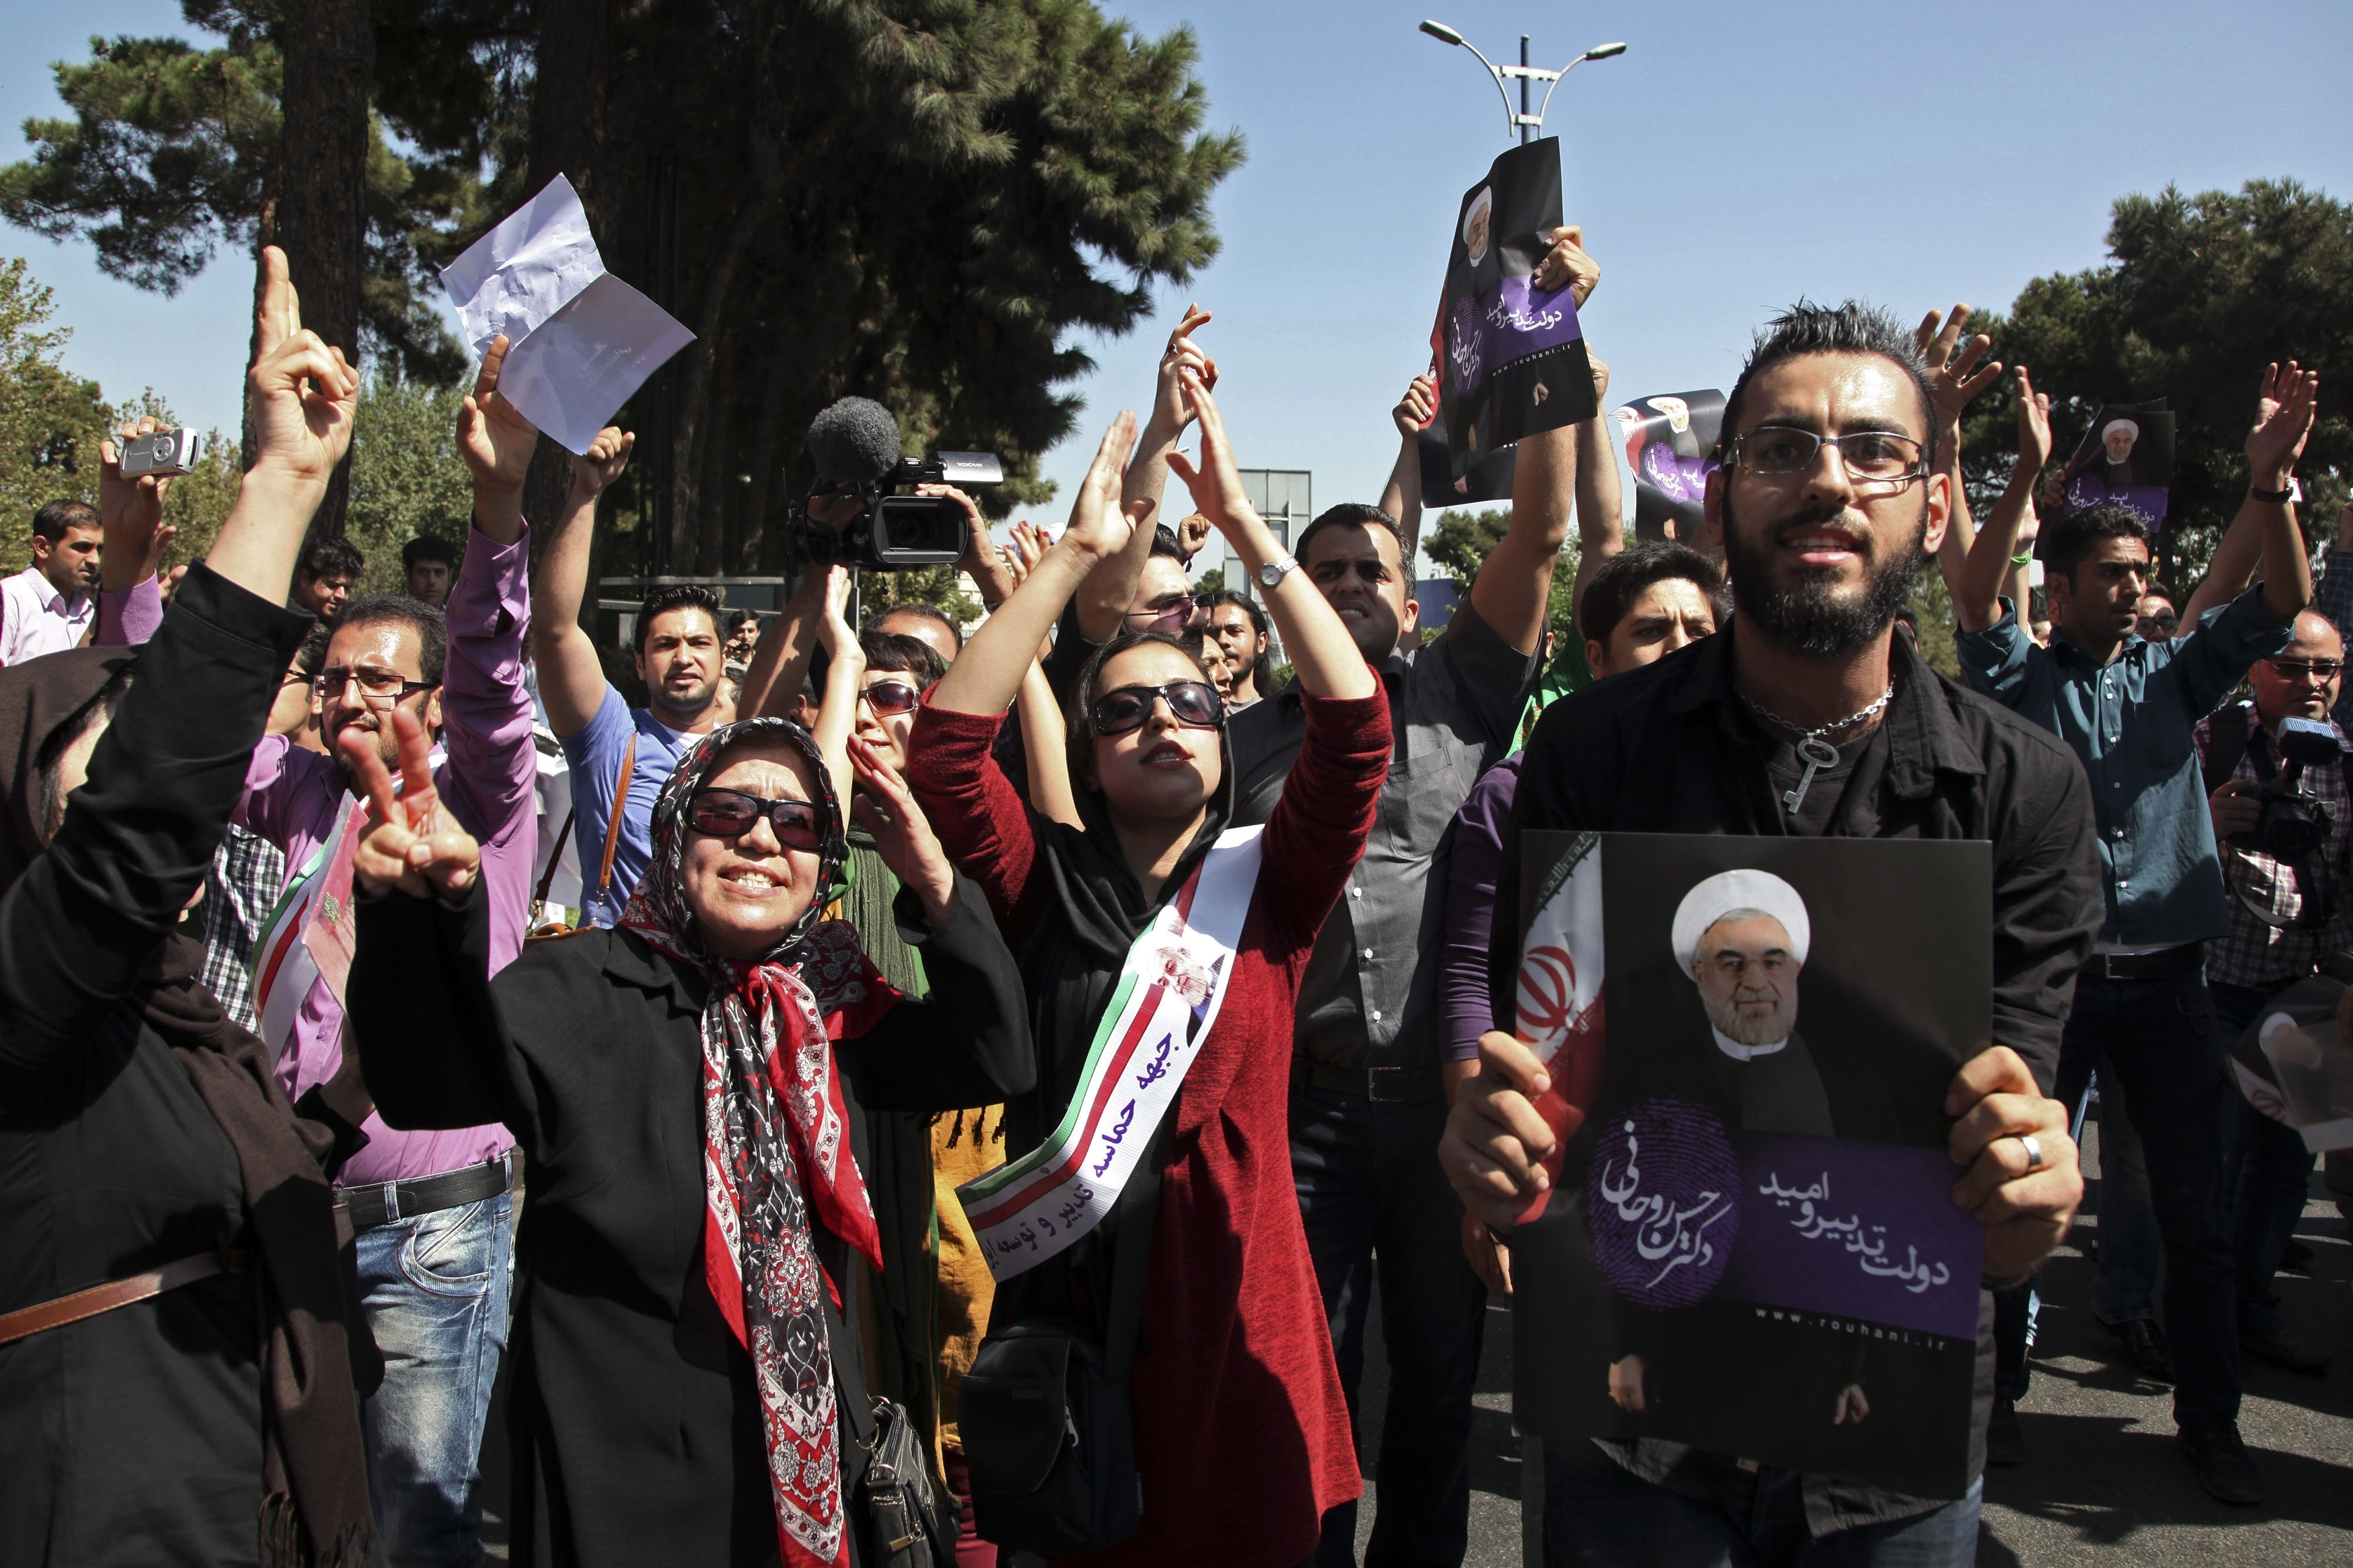 Supporters of Iranian President Hassan Rouhani cheer his arrival in Tehran on Saturday after his unexpected phone conversation with President Obama.